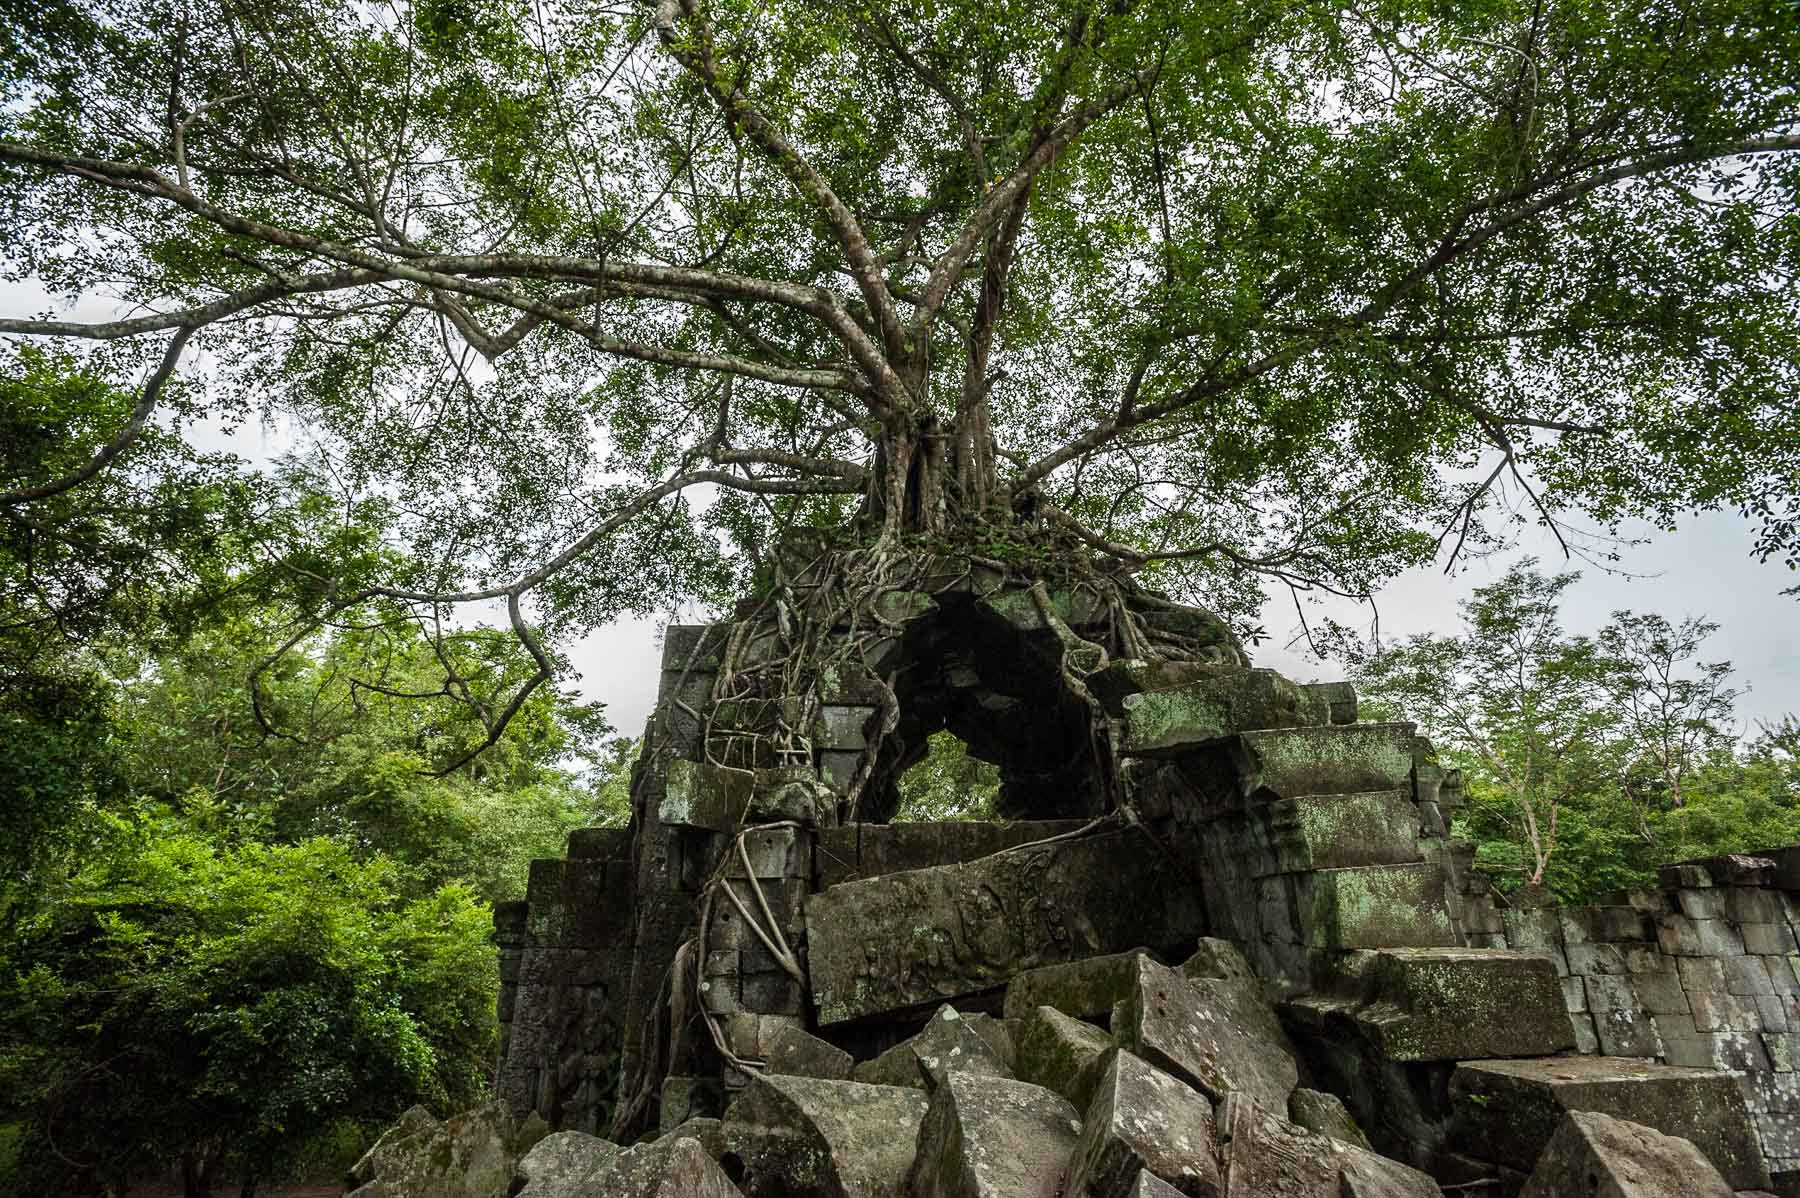 Strangler fig tree on Ankor Temple, Banteay Srey, Cambodia